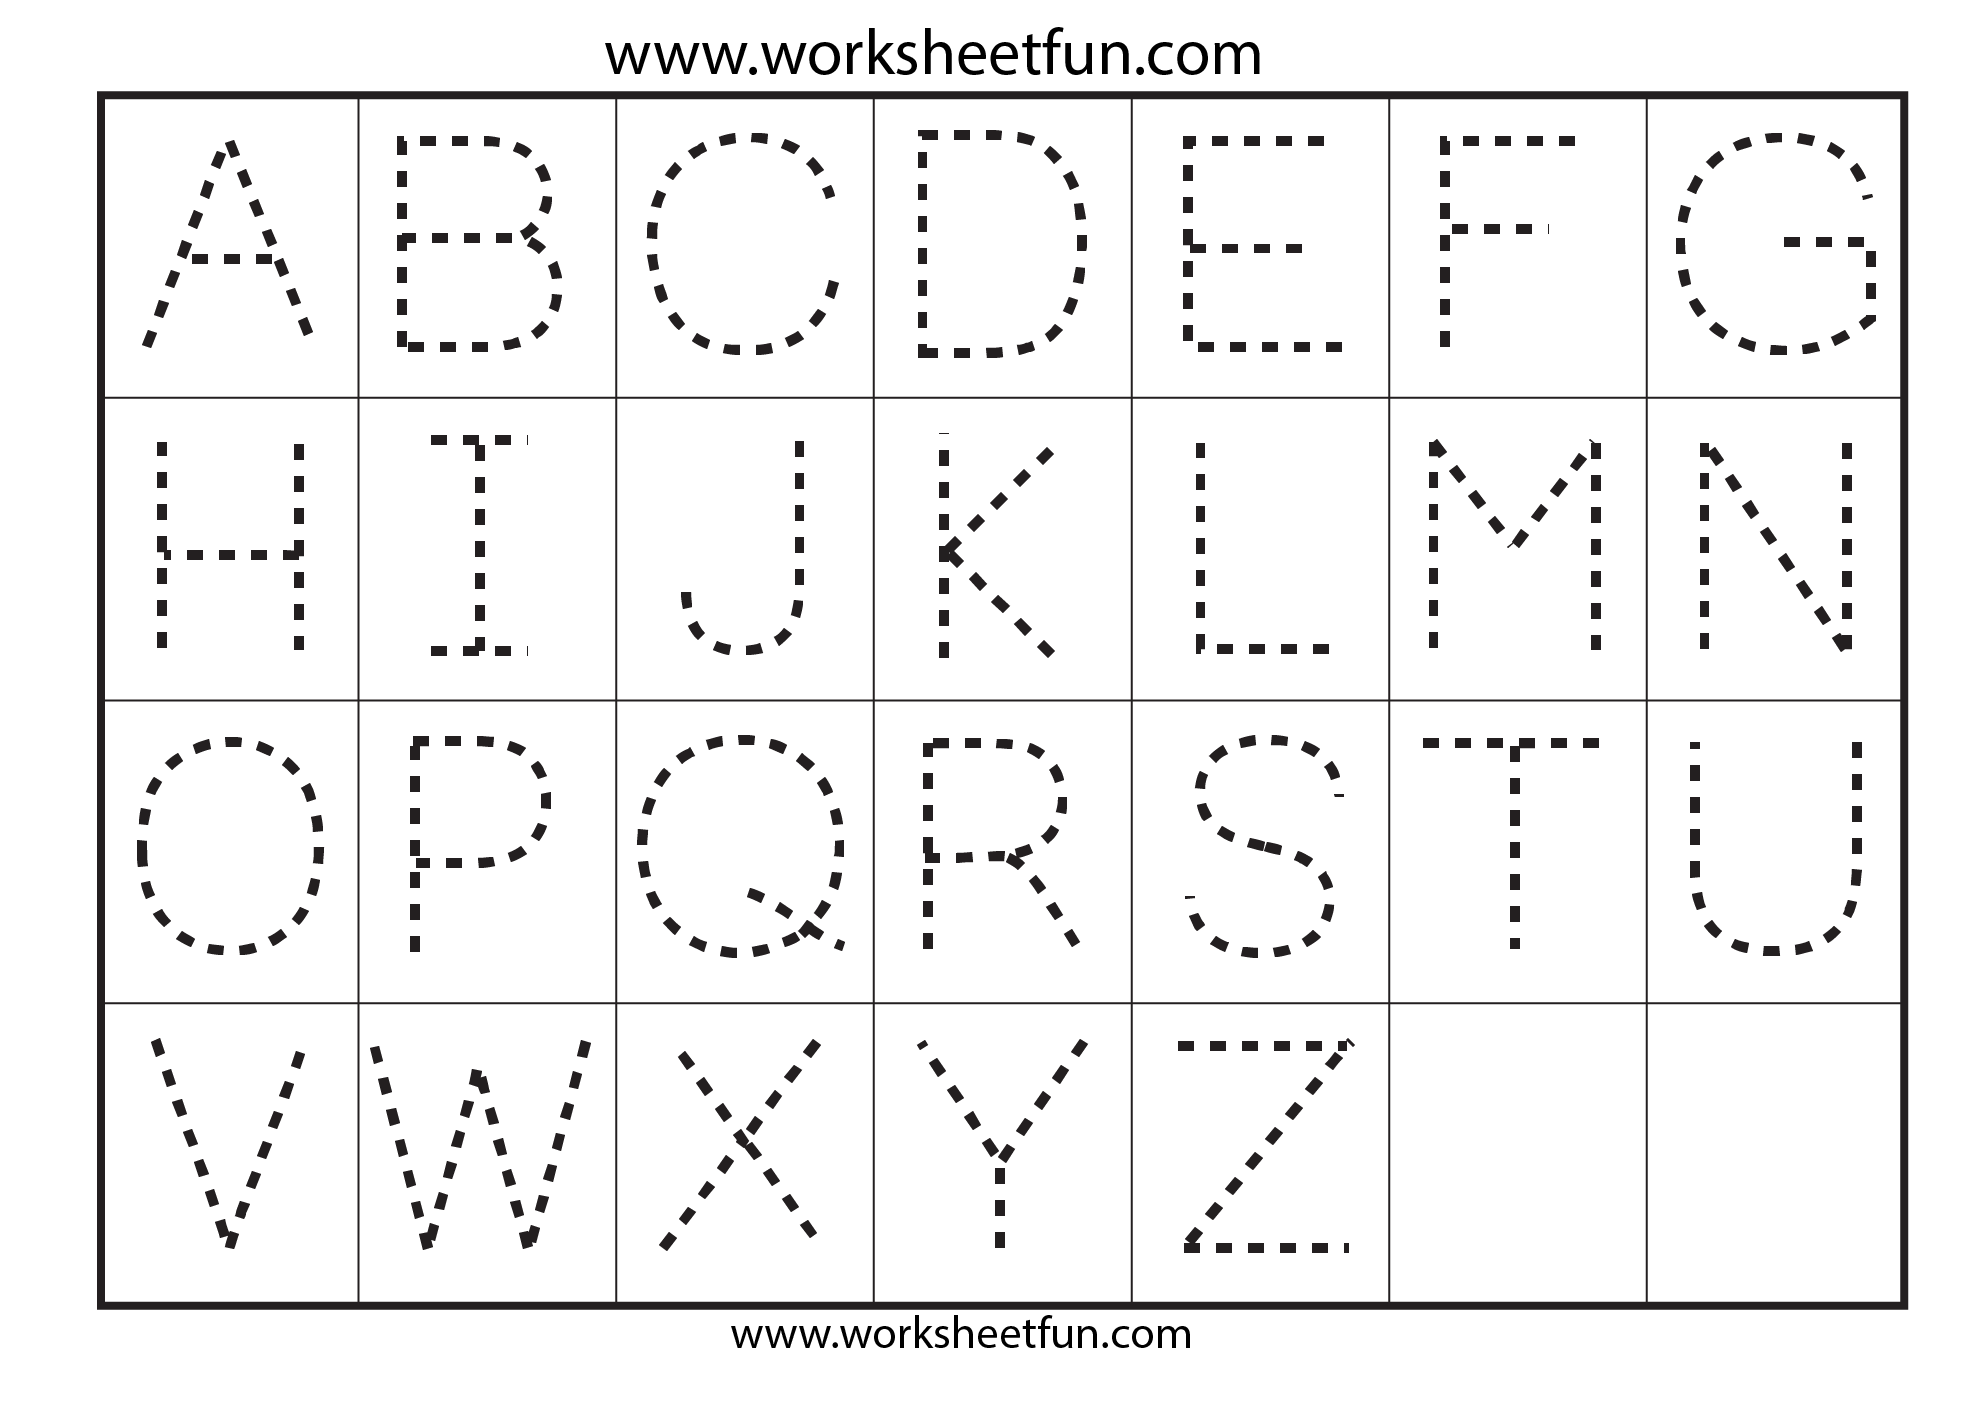 Worksheets Trace Alphabet alphabet tracing worksheet narrativamente alphabets worksheets coterraneo